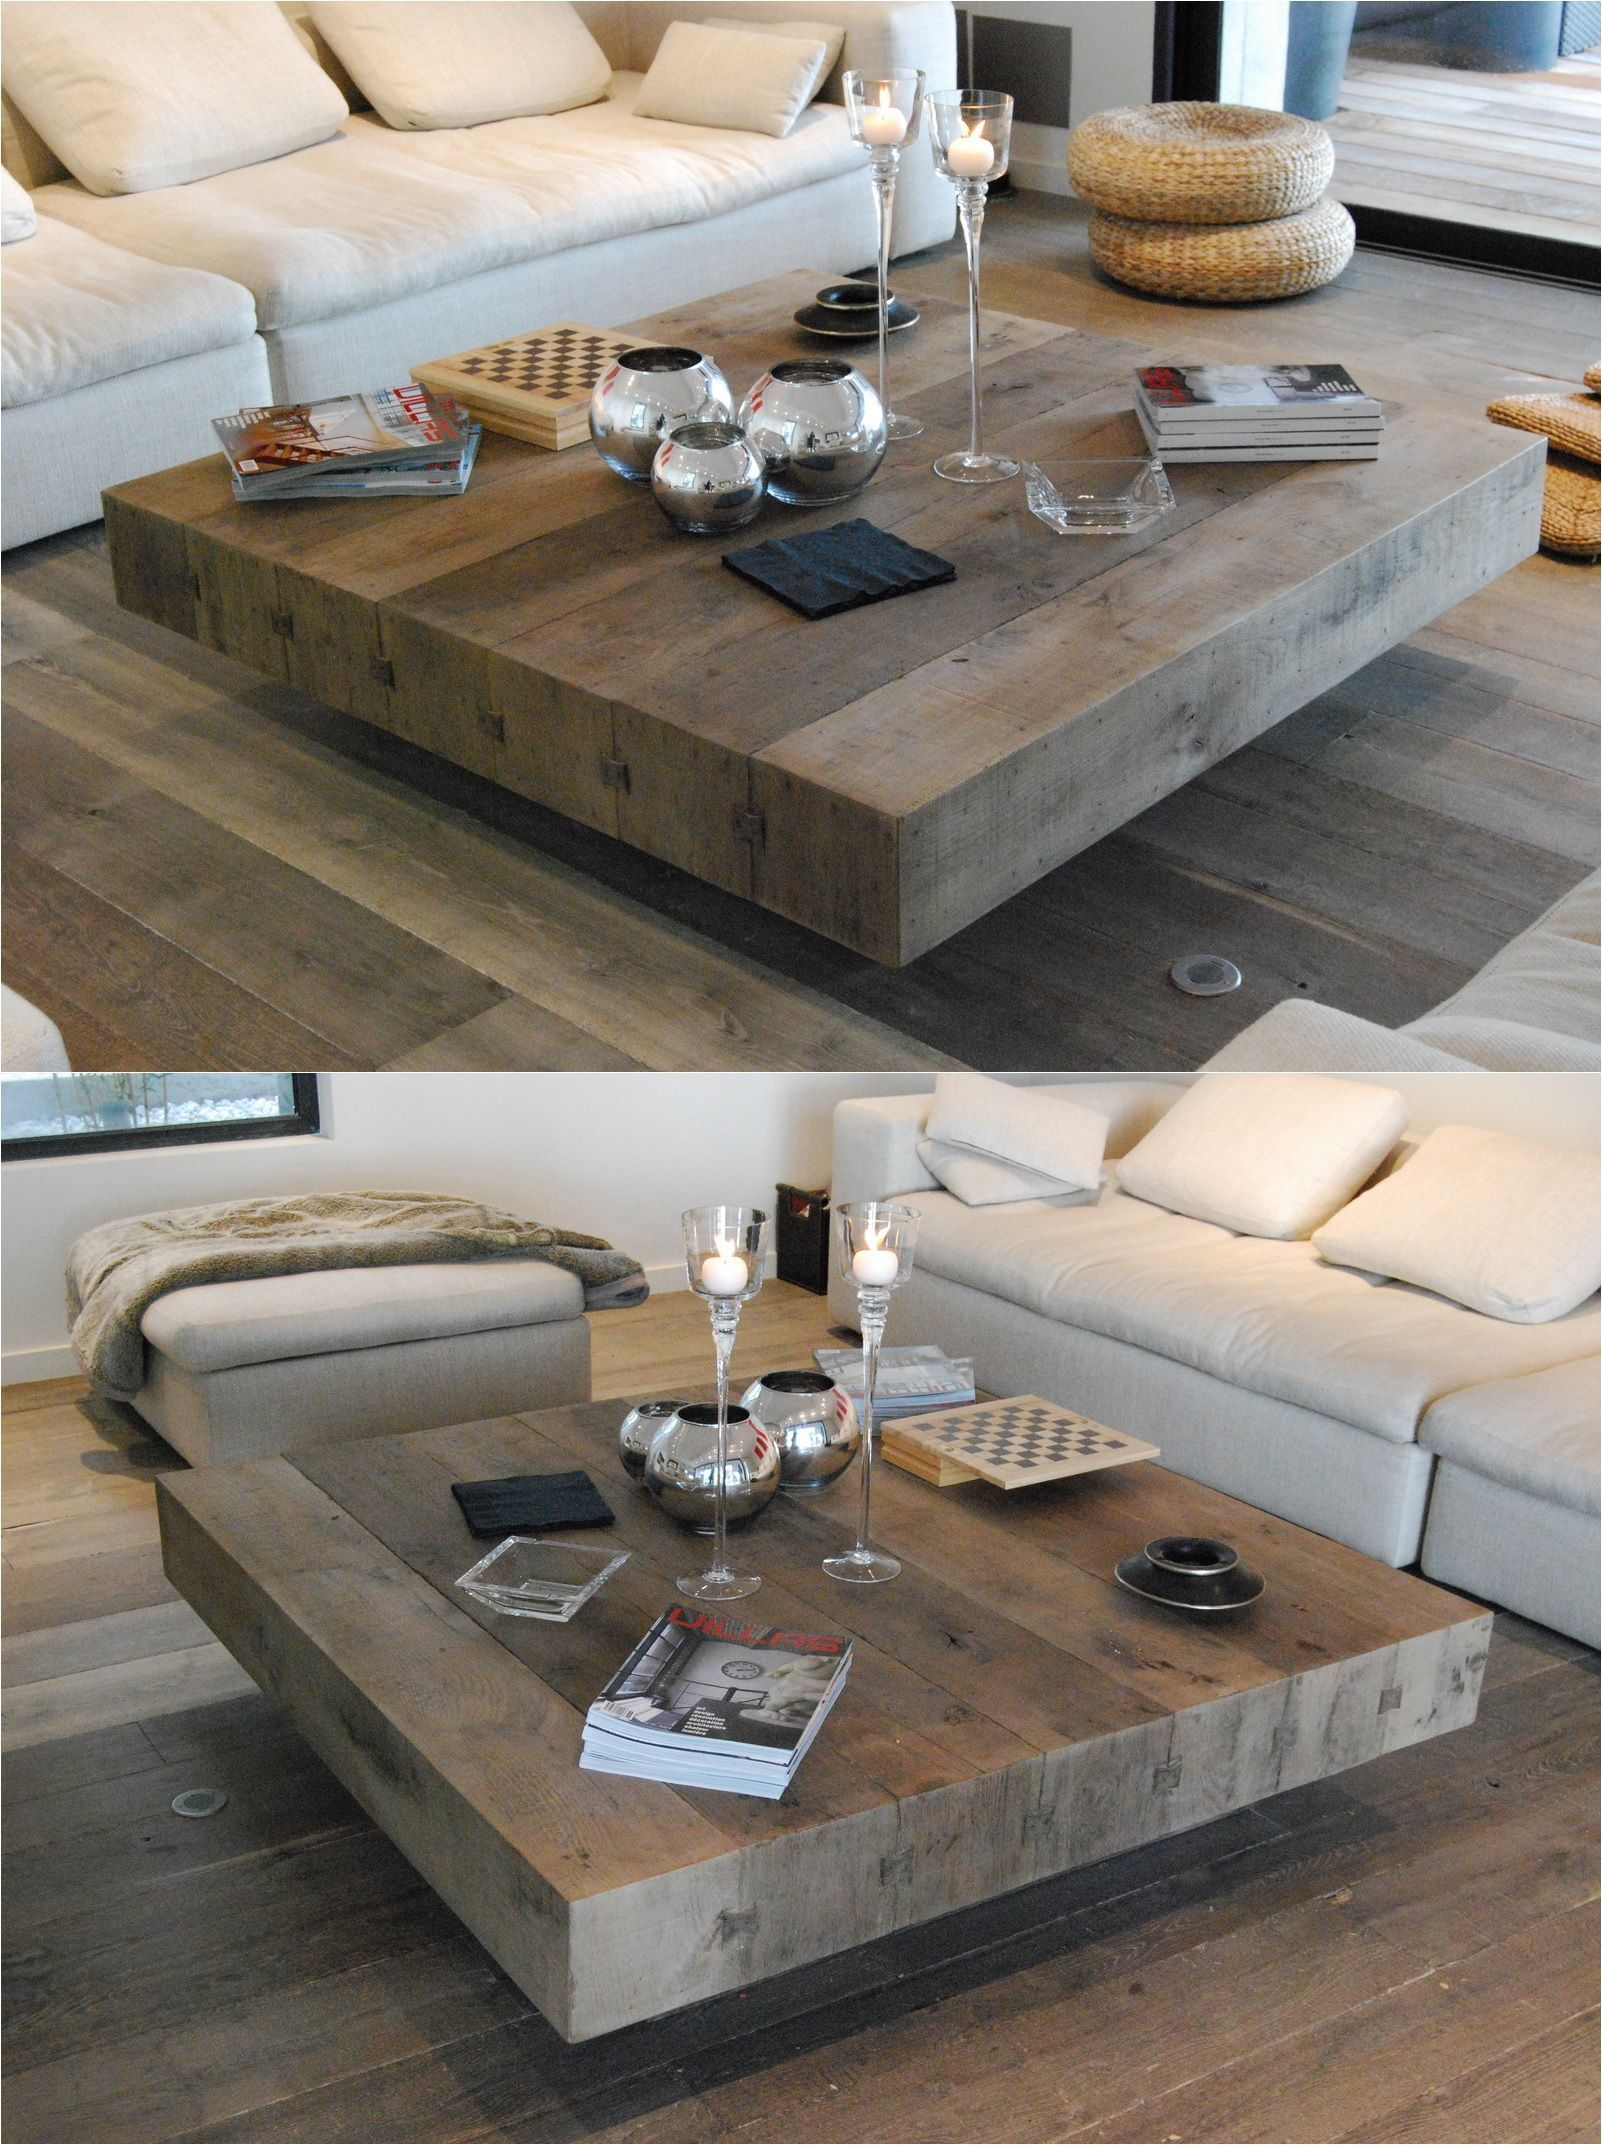 50 Coffee Tables You Ll Love Decoratoo Square Wooden Coffee Table Coffee Table Wood Table Living Room [ 2145 x 1602 Pixel ]